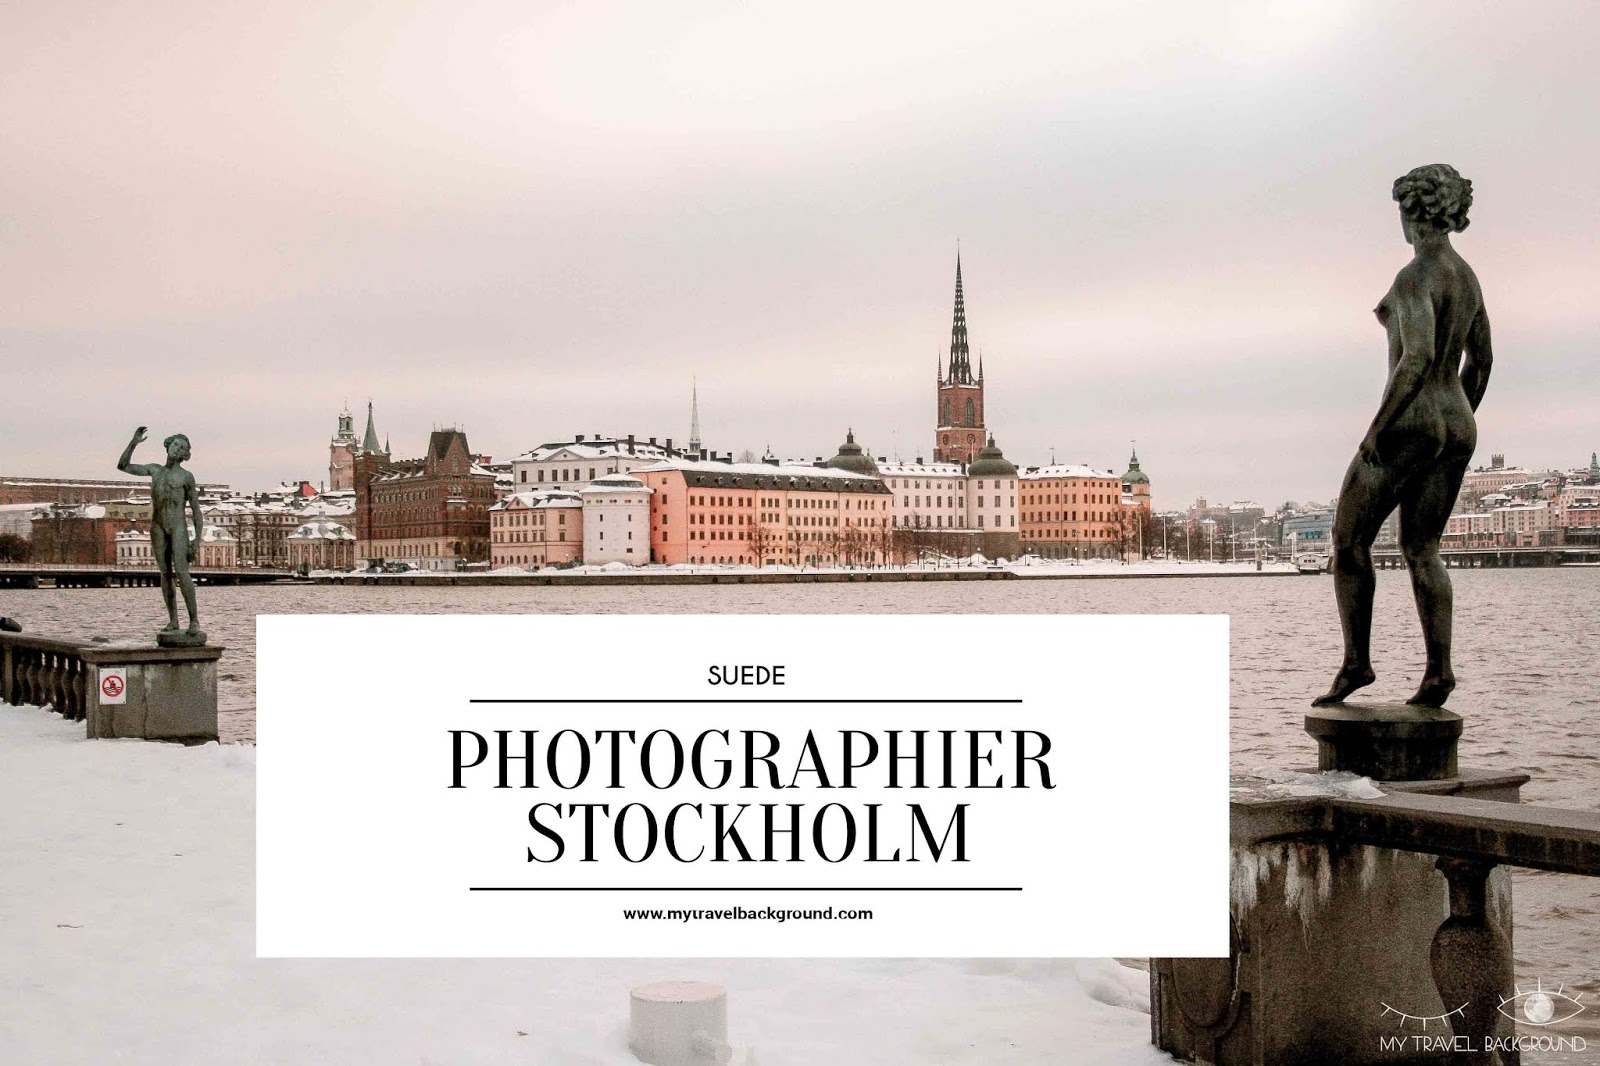 My Travel Background : photographier Stockholm : où trouver les plus belles vues ?